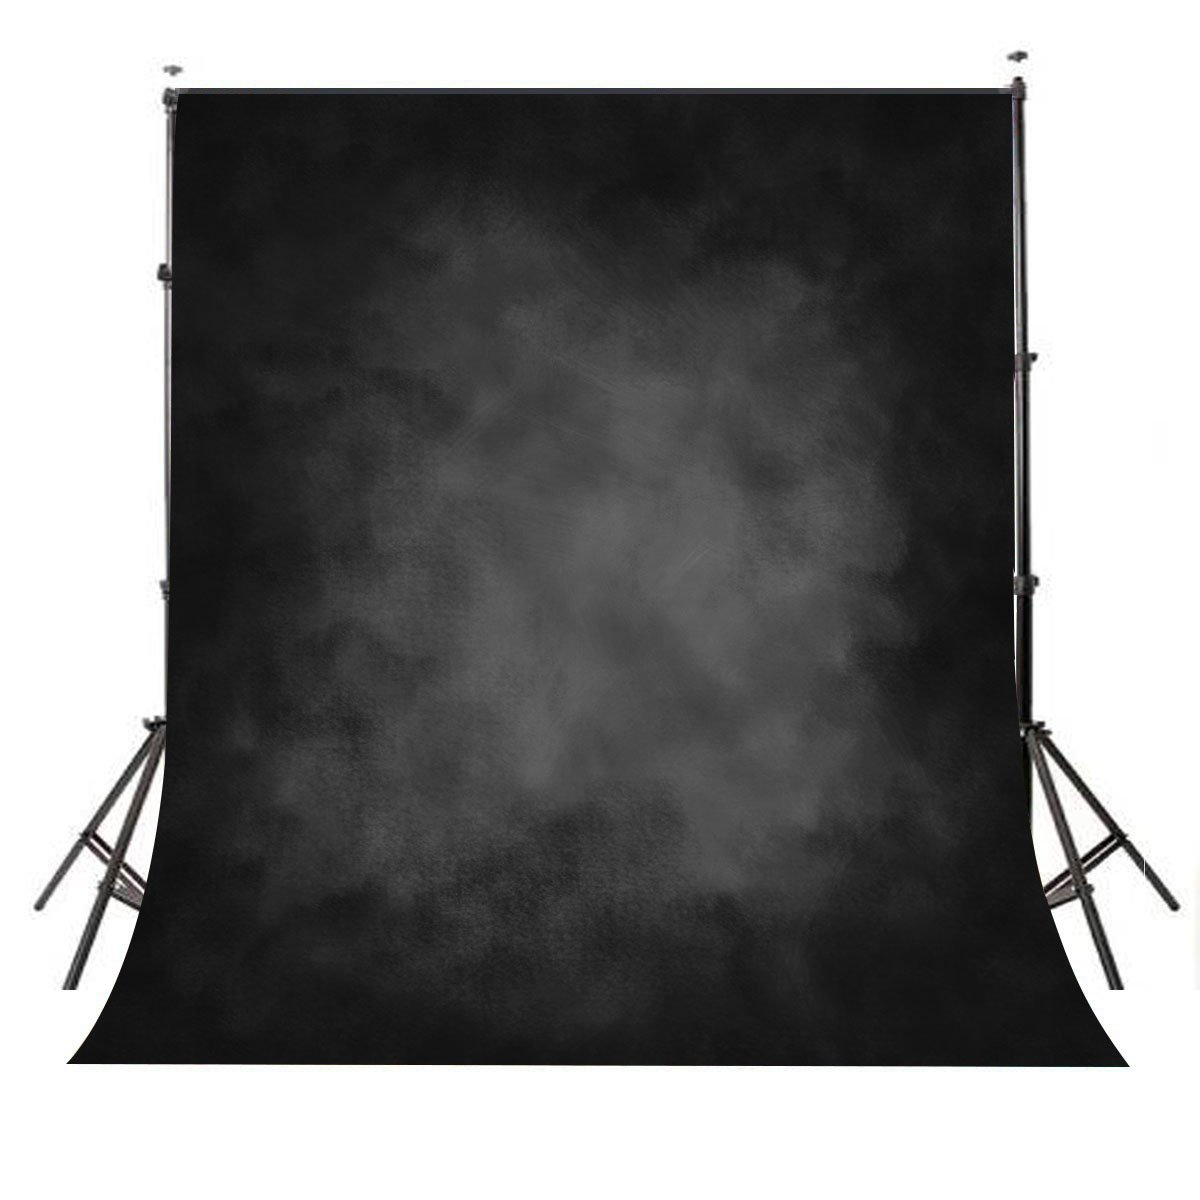 Mehofoto Retro Portrait Backdrop 5 x 7 ft Black Abstract Photography Background for Photography Studio Video Polycotton Professional Head Shots Photo Backdrops